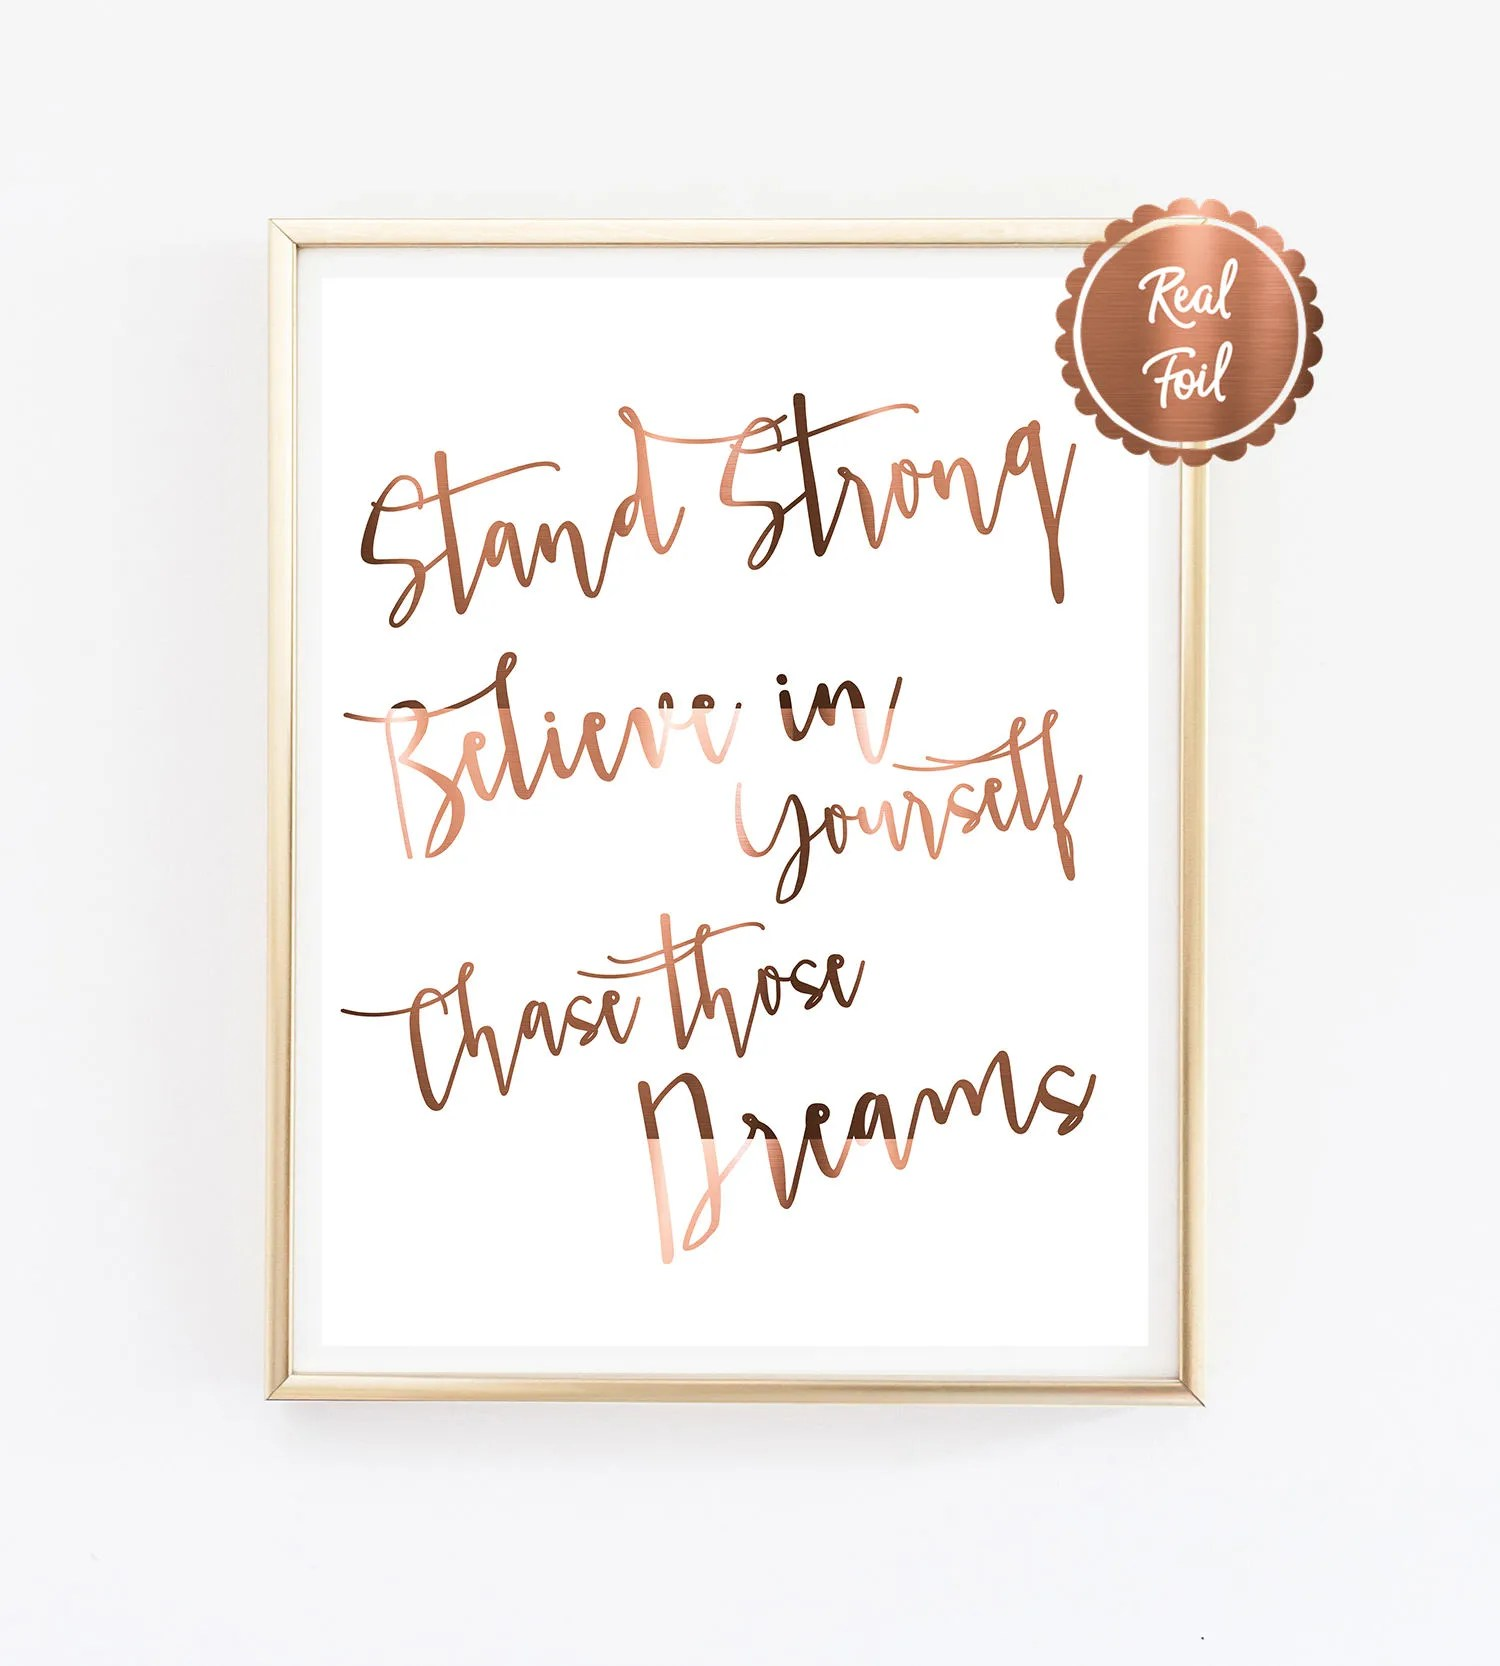 Inspiring Quote Print \/\/ Stand strong \/\/ Believe in yourself - christmas list templates